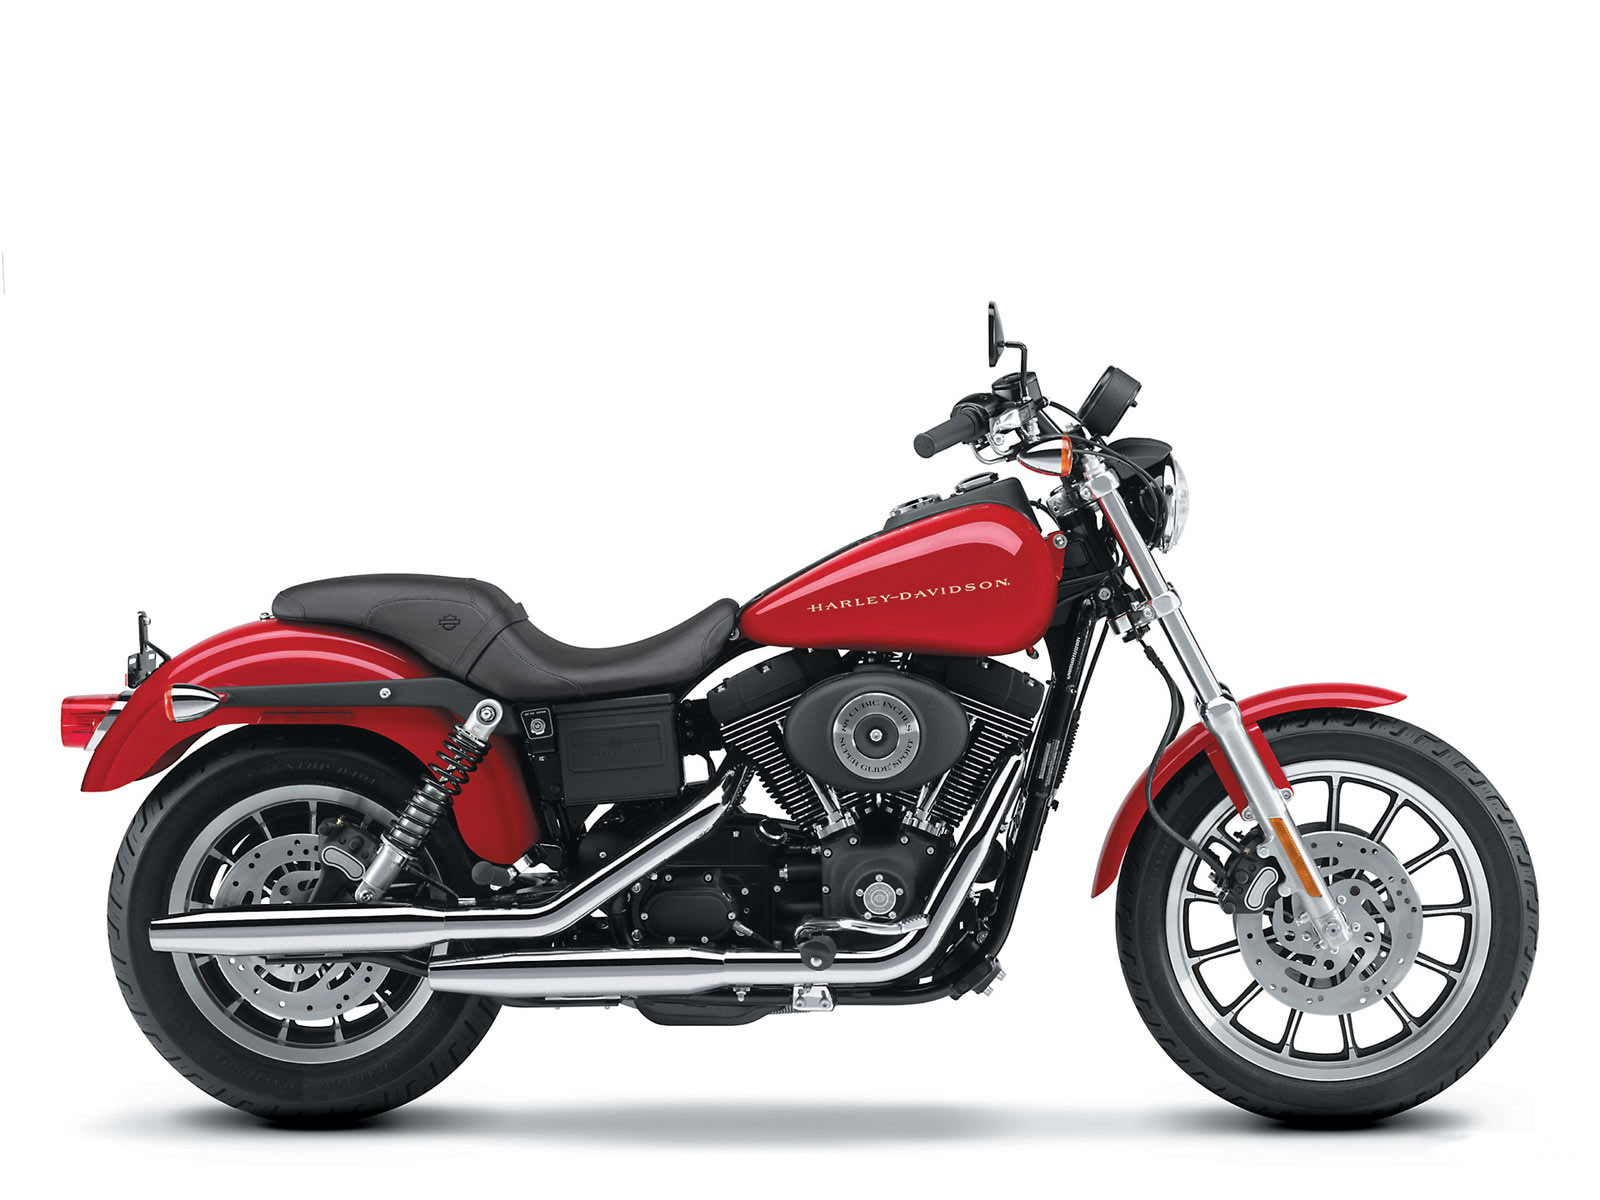 2002 fxdx dyna super glide sport pictures insurance info. Black Bedroom Furniture Sets. Home Design Ideas